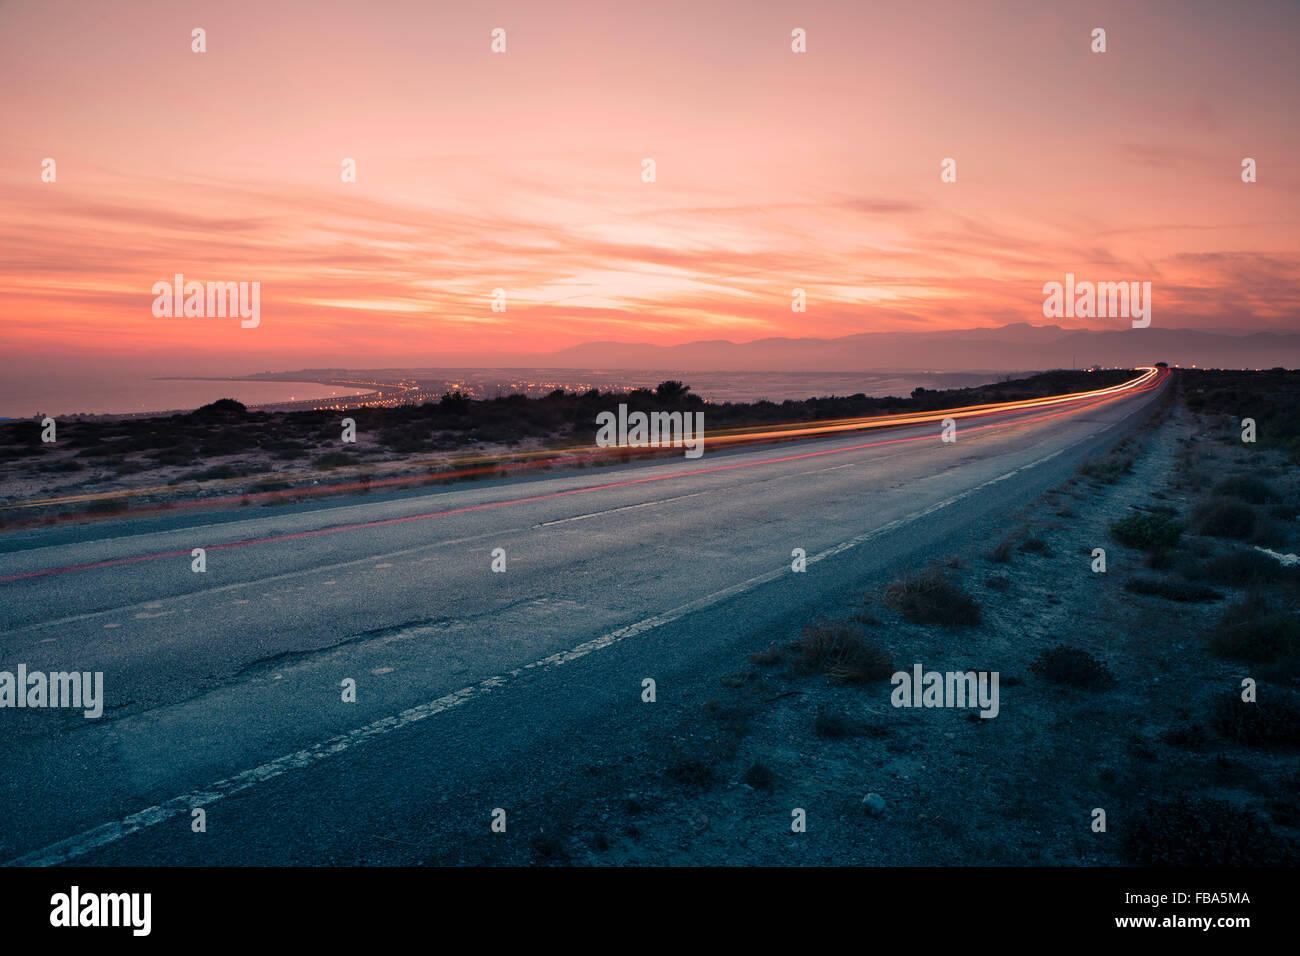 Spain, Almería, Almerimar, View of light trail on road by sea at sunset - Stock Image